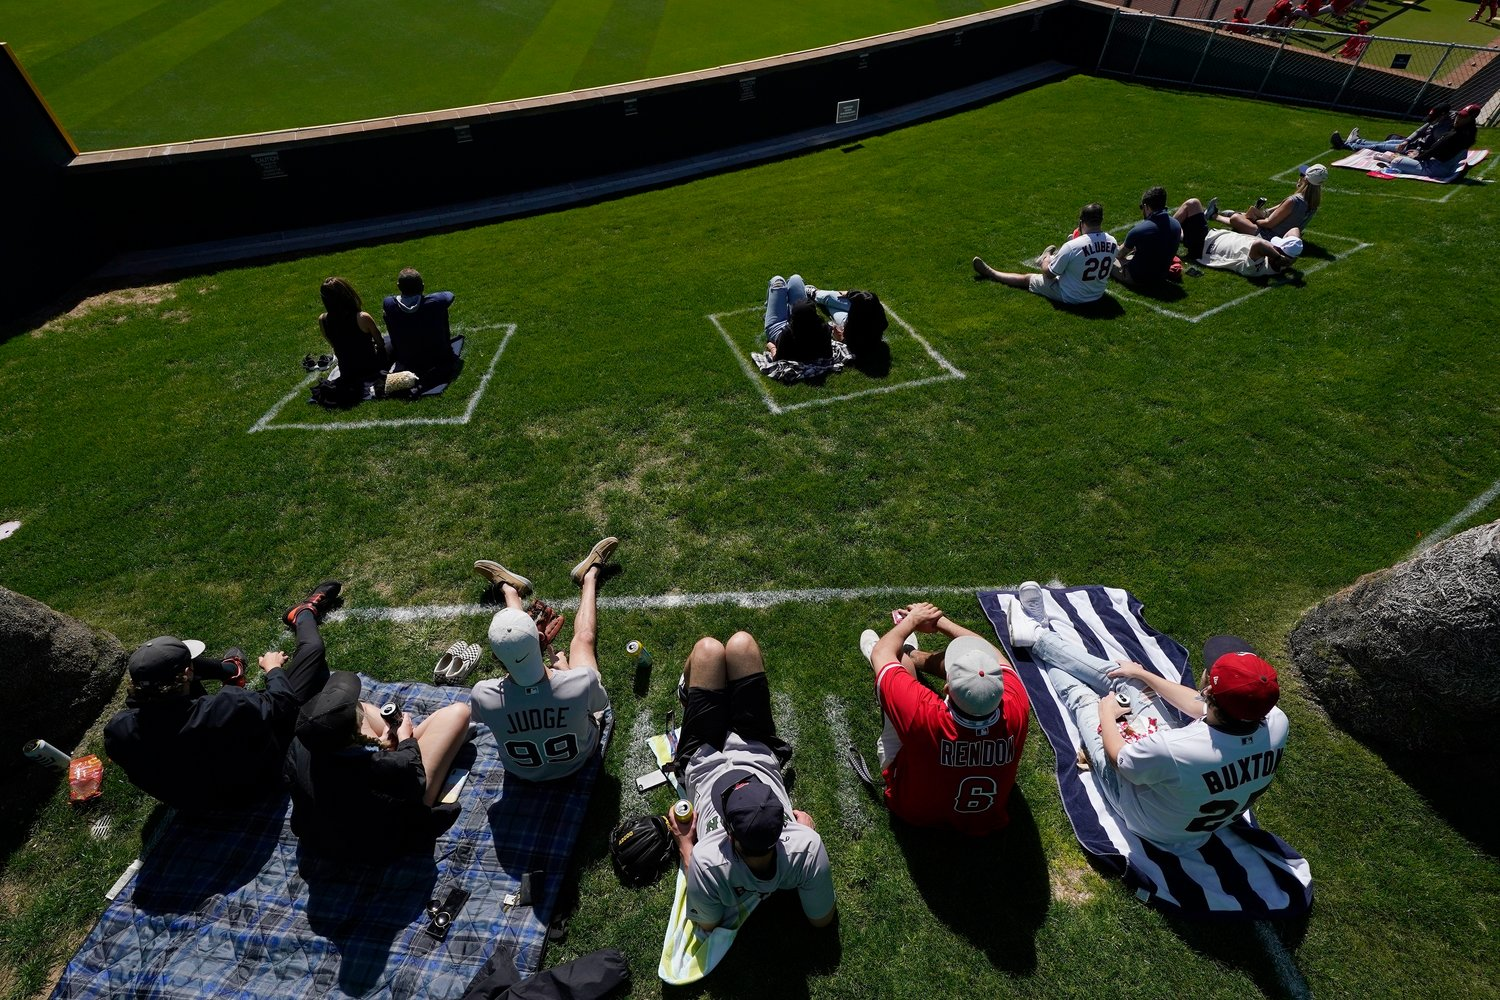 Fans sit in their COVID-19 socially-distanced pods at the Goodyear Ballpark during the fourth inning of a spring training baseball game between the Cleveland Indians and the Cincinnati Reds, Sunday, Feb. 28, 2021, in Goodyear, Ariz. (AP Photo/Ross D. Franklin)